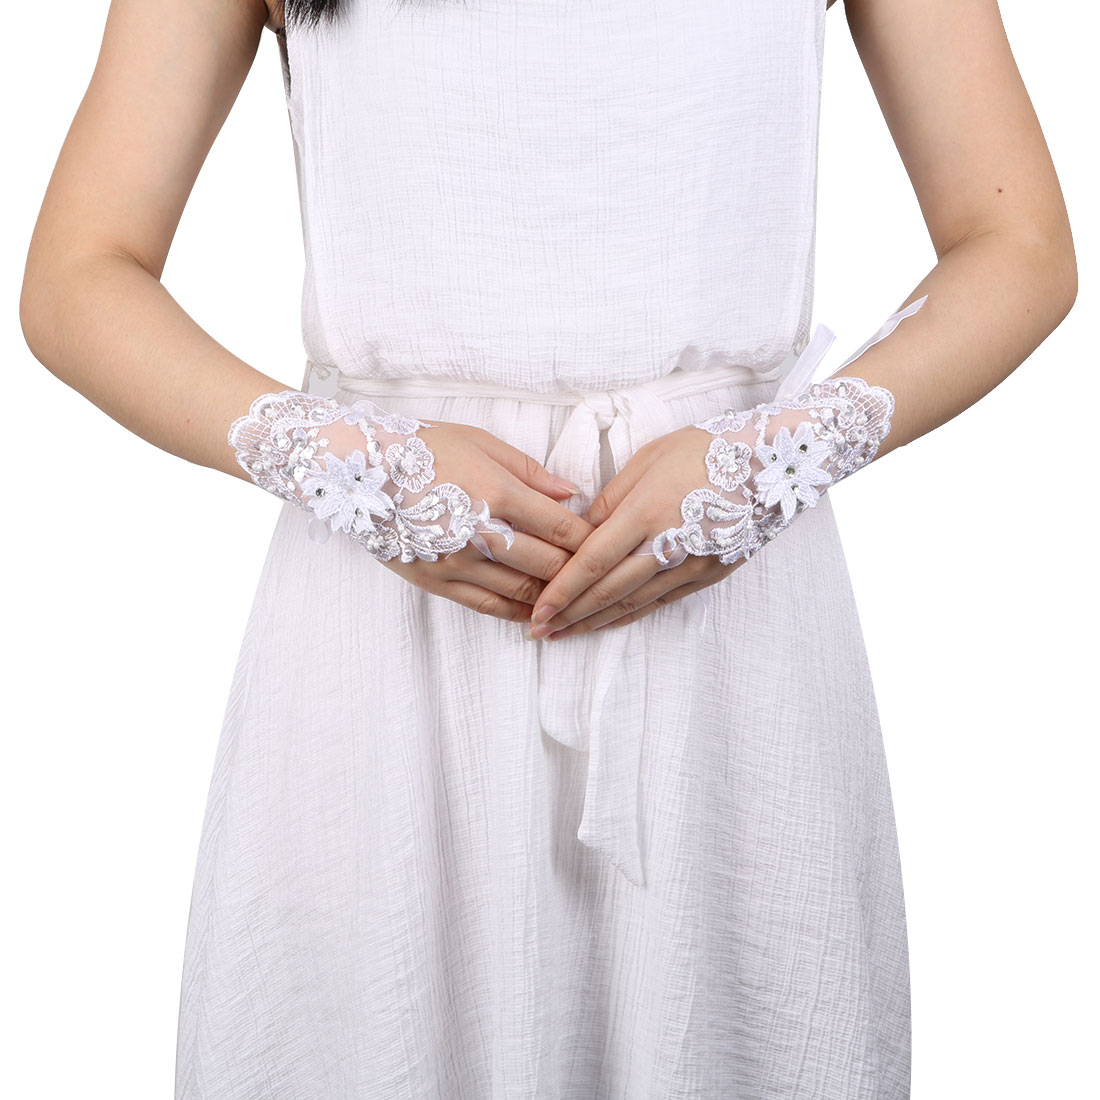 Woman Polyester Flower Sequins Decor Bridesmaid Hand Lace Fingerless Glove Pair